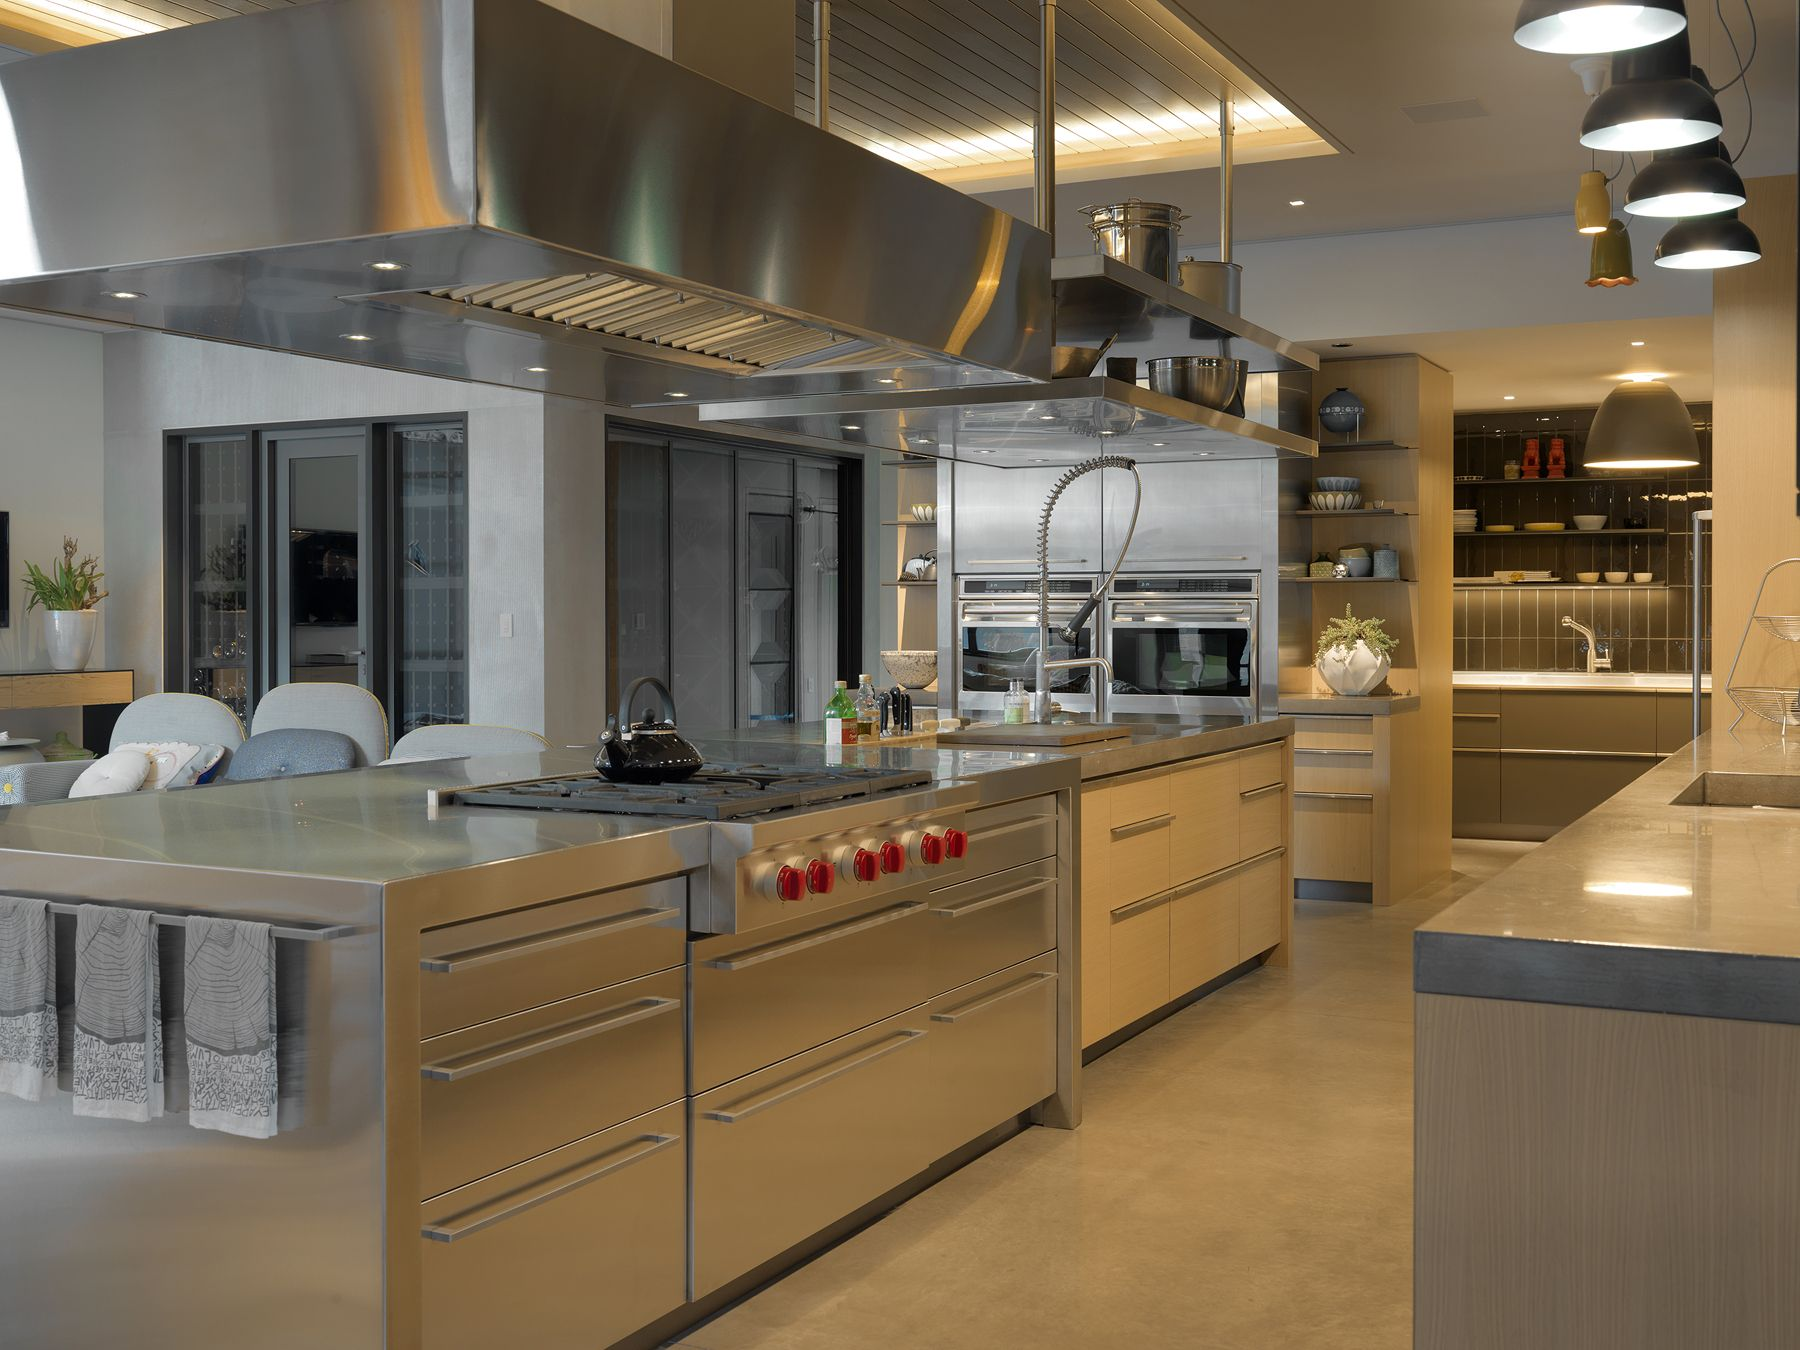 kitchen design contest sub zero wolf appliances - resepi orang